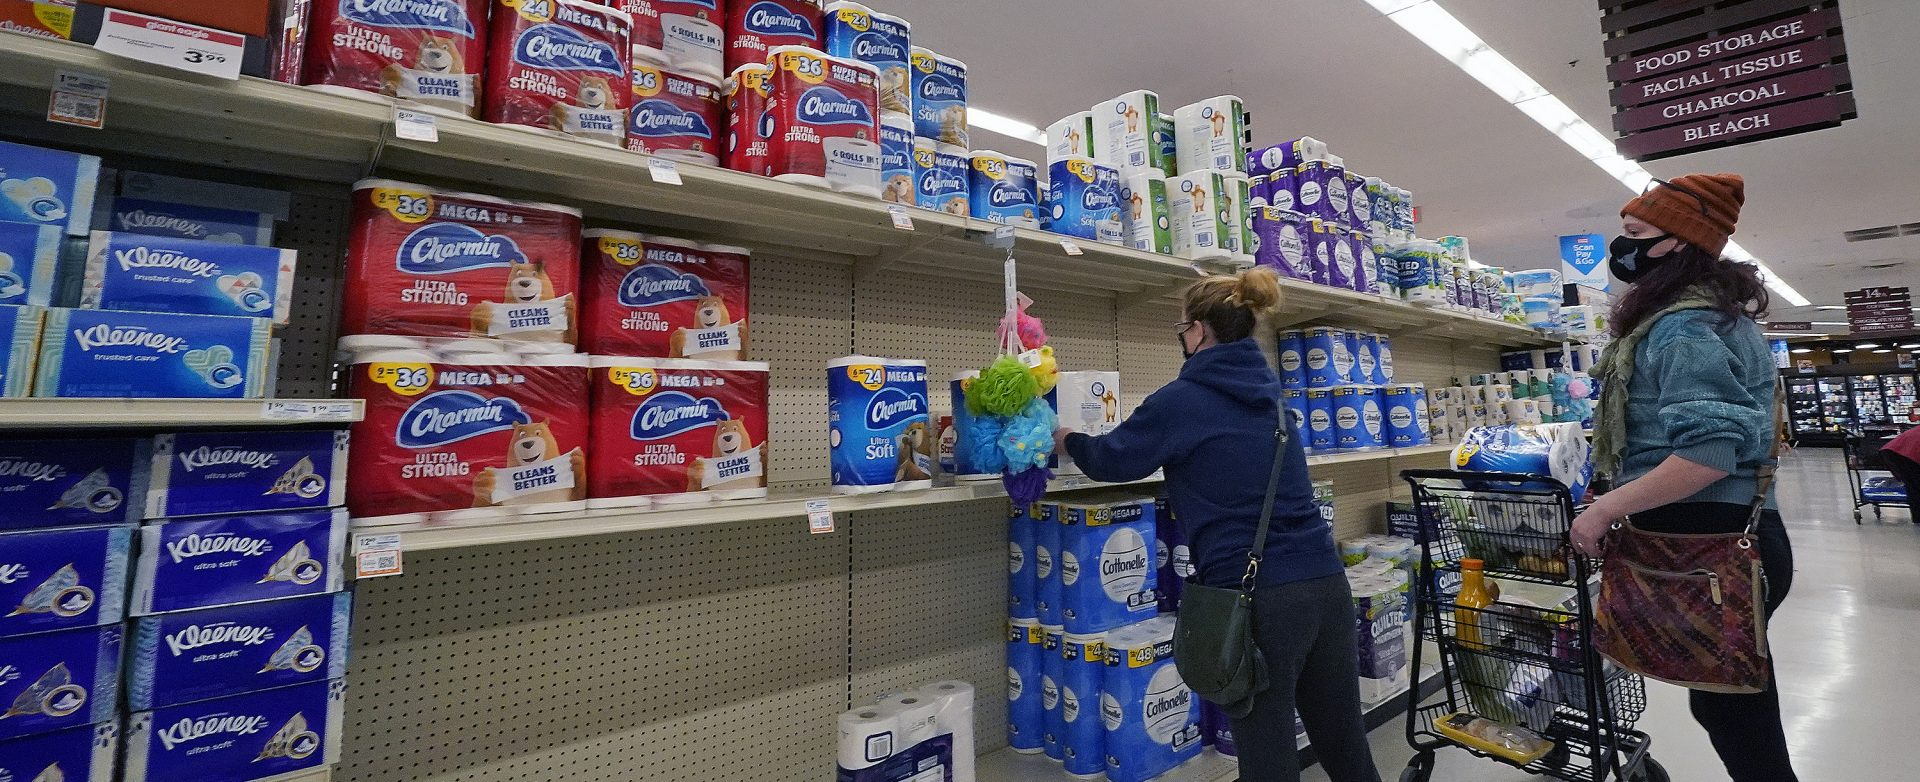 A woman buys toilet paper at a market in Mount Lebanon, Pa, on Tuesday, Nov. 17, 2020. Pennsylvania is strengthening its mask mandate and will require out-of-state travelers to test negative for the coronavirus before arrival. The state health secretary, Dr. Rachel Levine, said the new measures are in response to a sharp increase in infections and hospitalizations. She said Tuesday that masks are now required indoors wherever people from different households are gathered — even if they are physically distant. Like the rest of the nation, Pennsylvania has seen coronavirus infections explode in recent weeks.